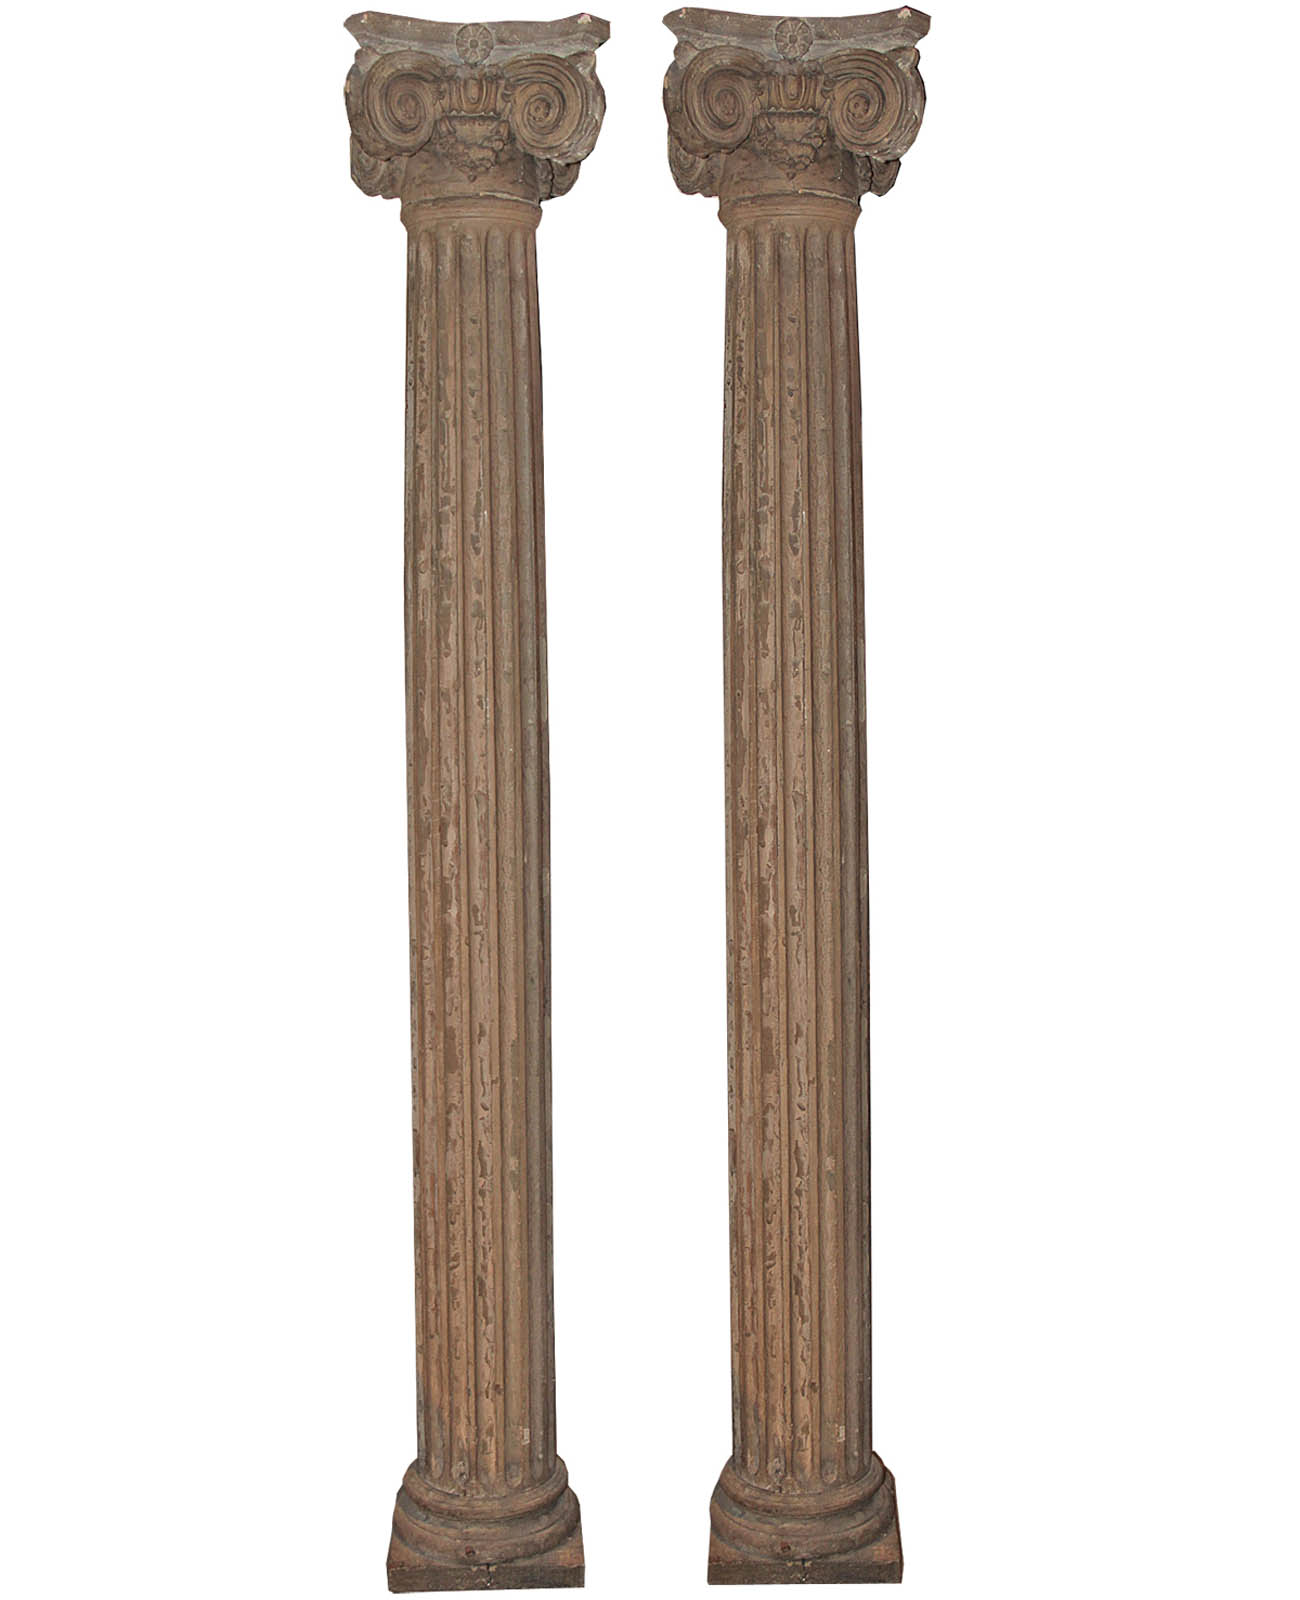 A Pair of 18th Century Louis XVI Fluted Pine Columns No. 4474